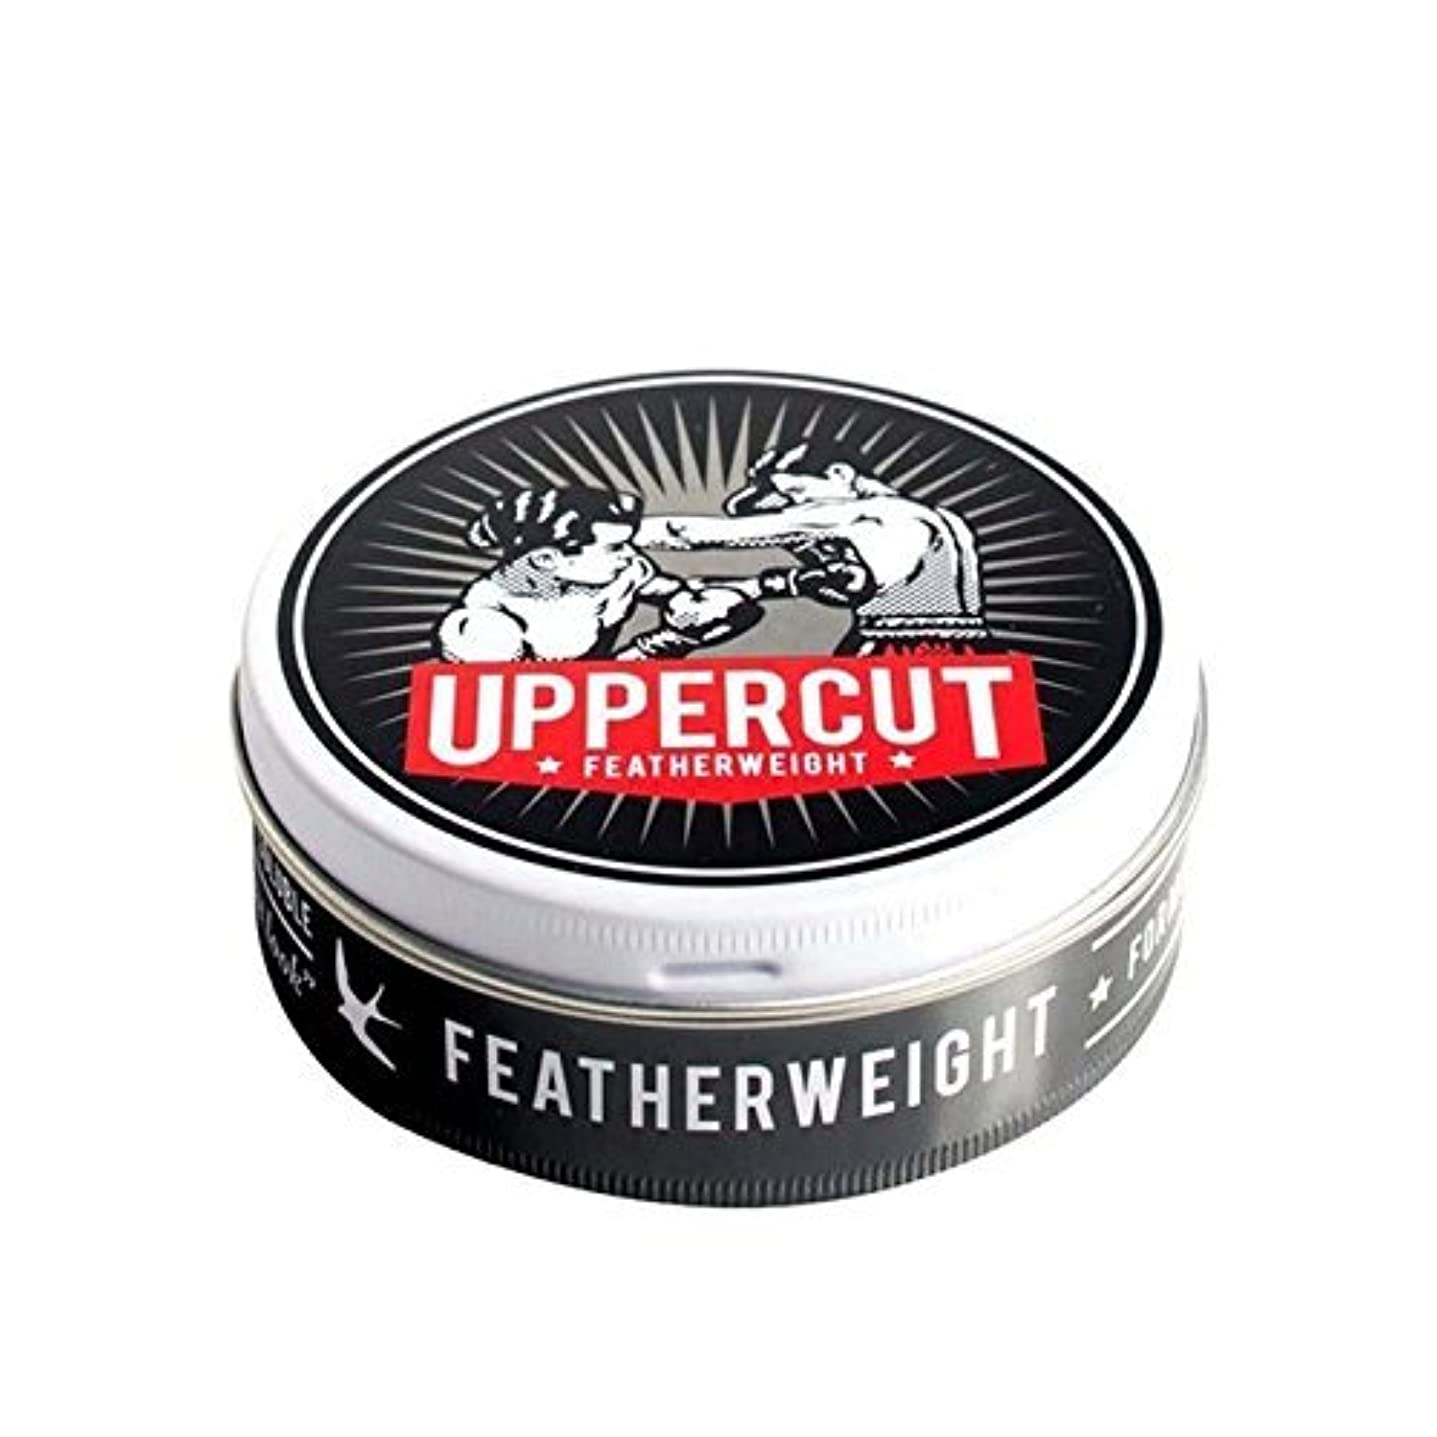 UPPERCUT DELUXE FEATHERWEIGHT アッパーカット デラックス フェザーウェイト 70g